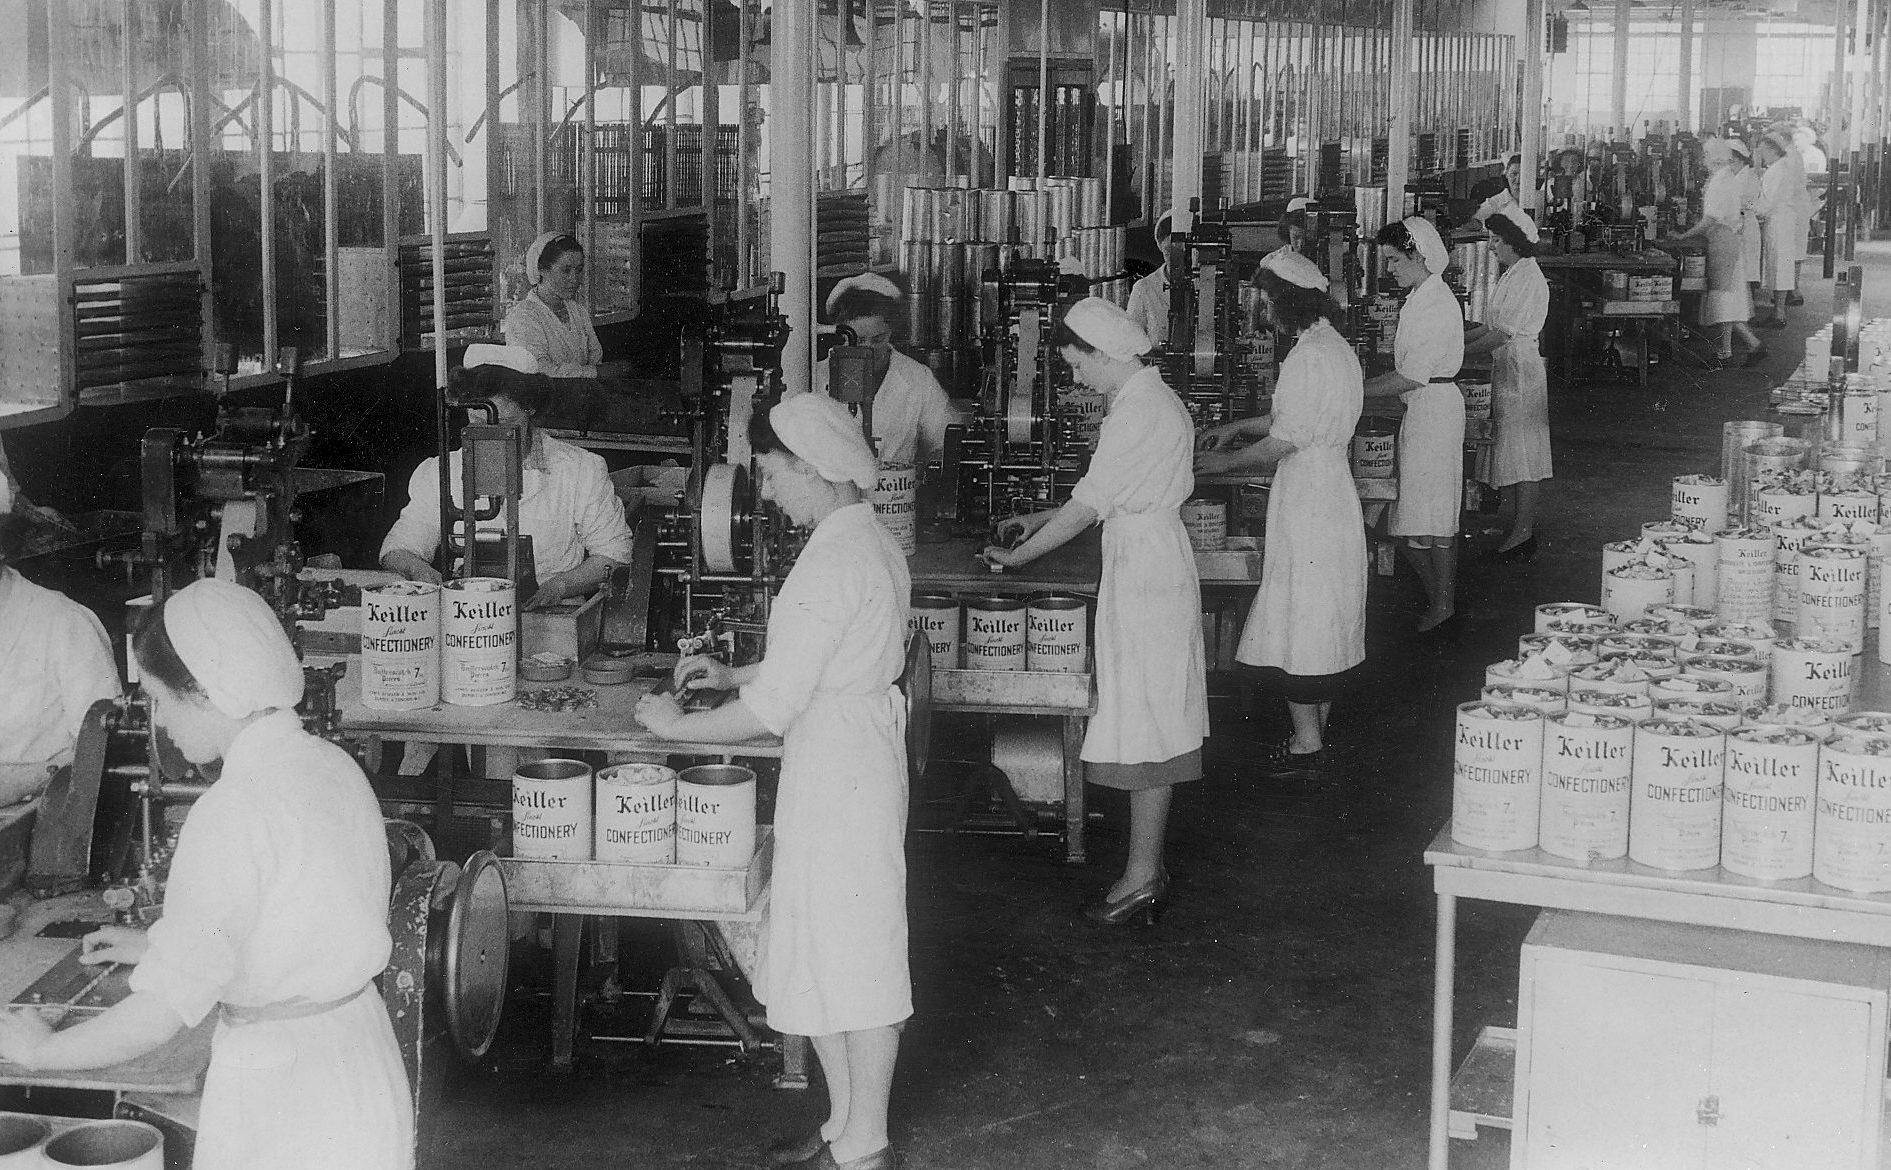 Confectionery workers in the Keiller factory.